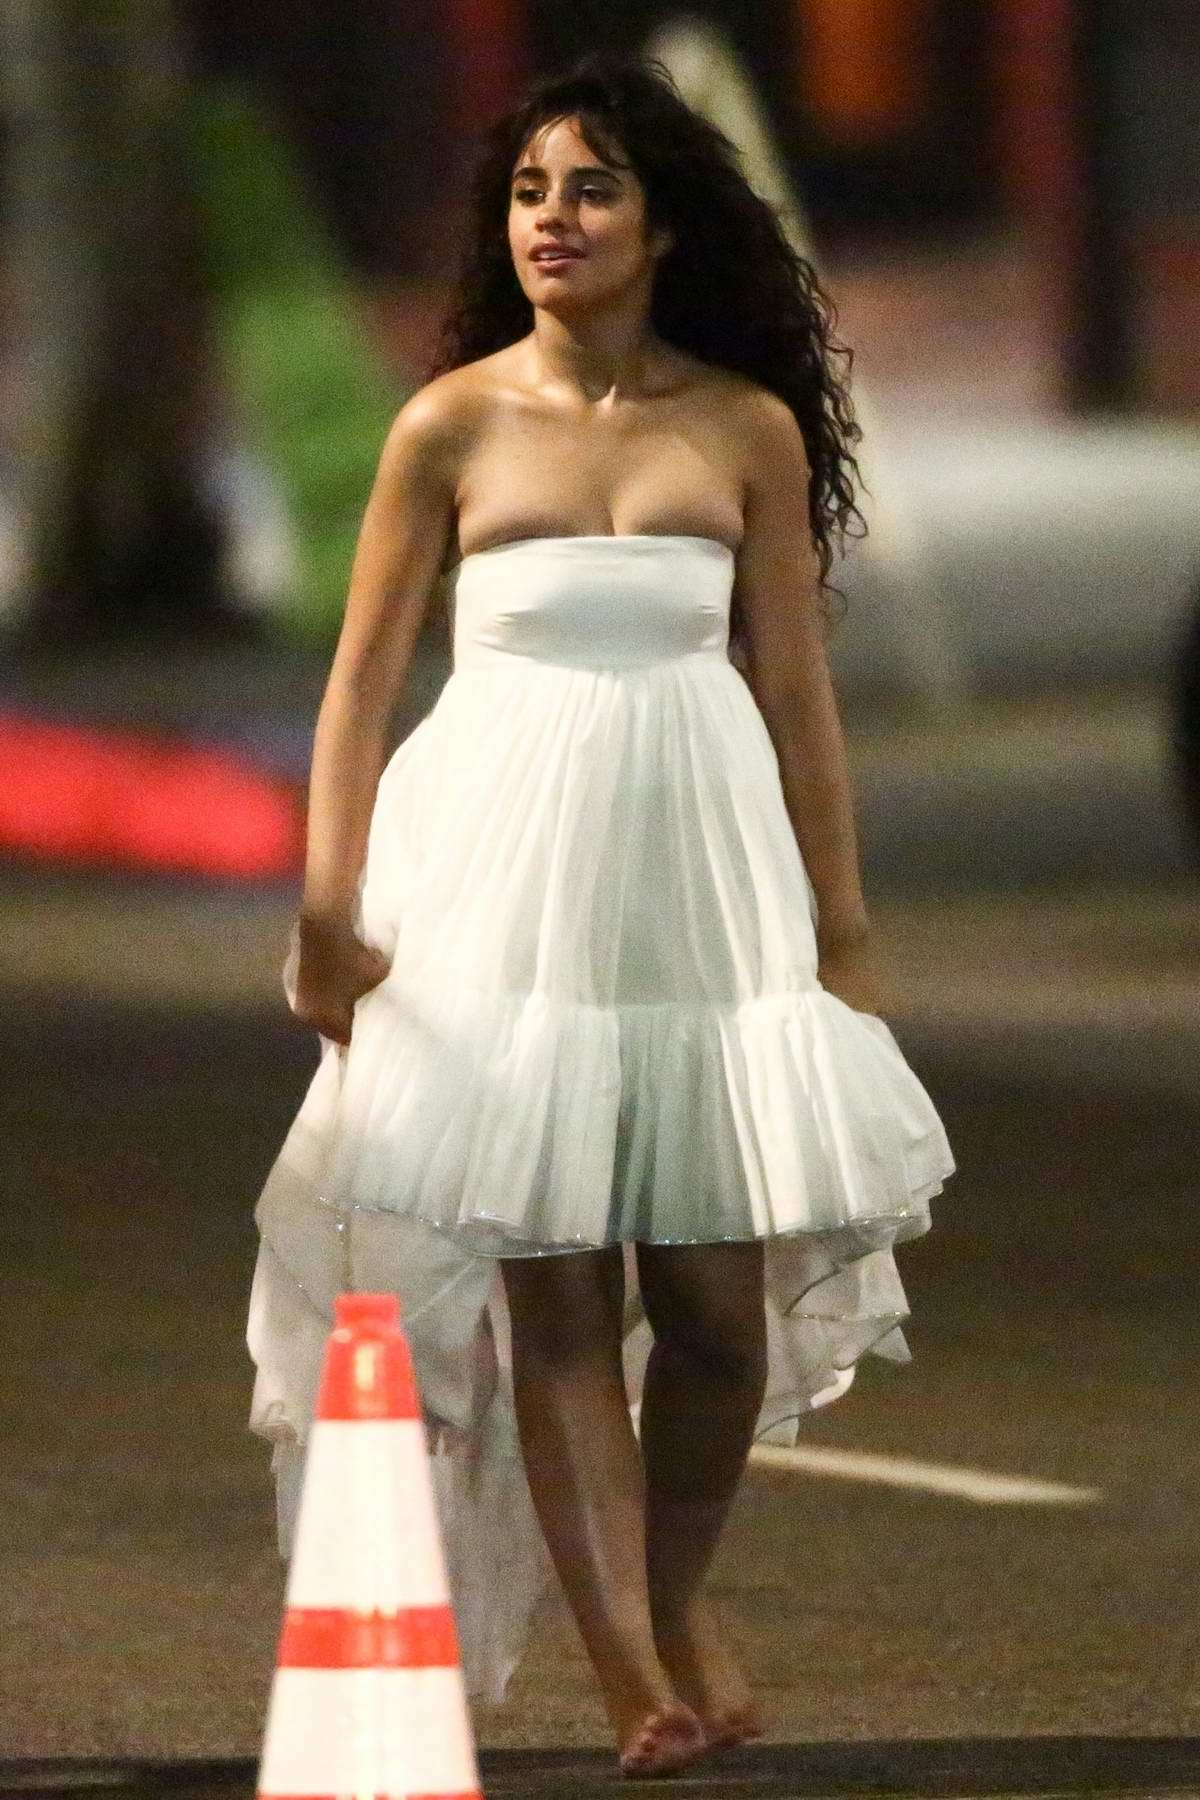 Camila Cabello seen wearing a white dress while filming a new music video in Los Angeles